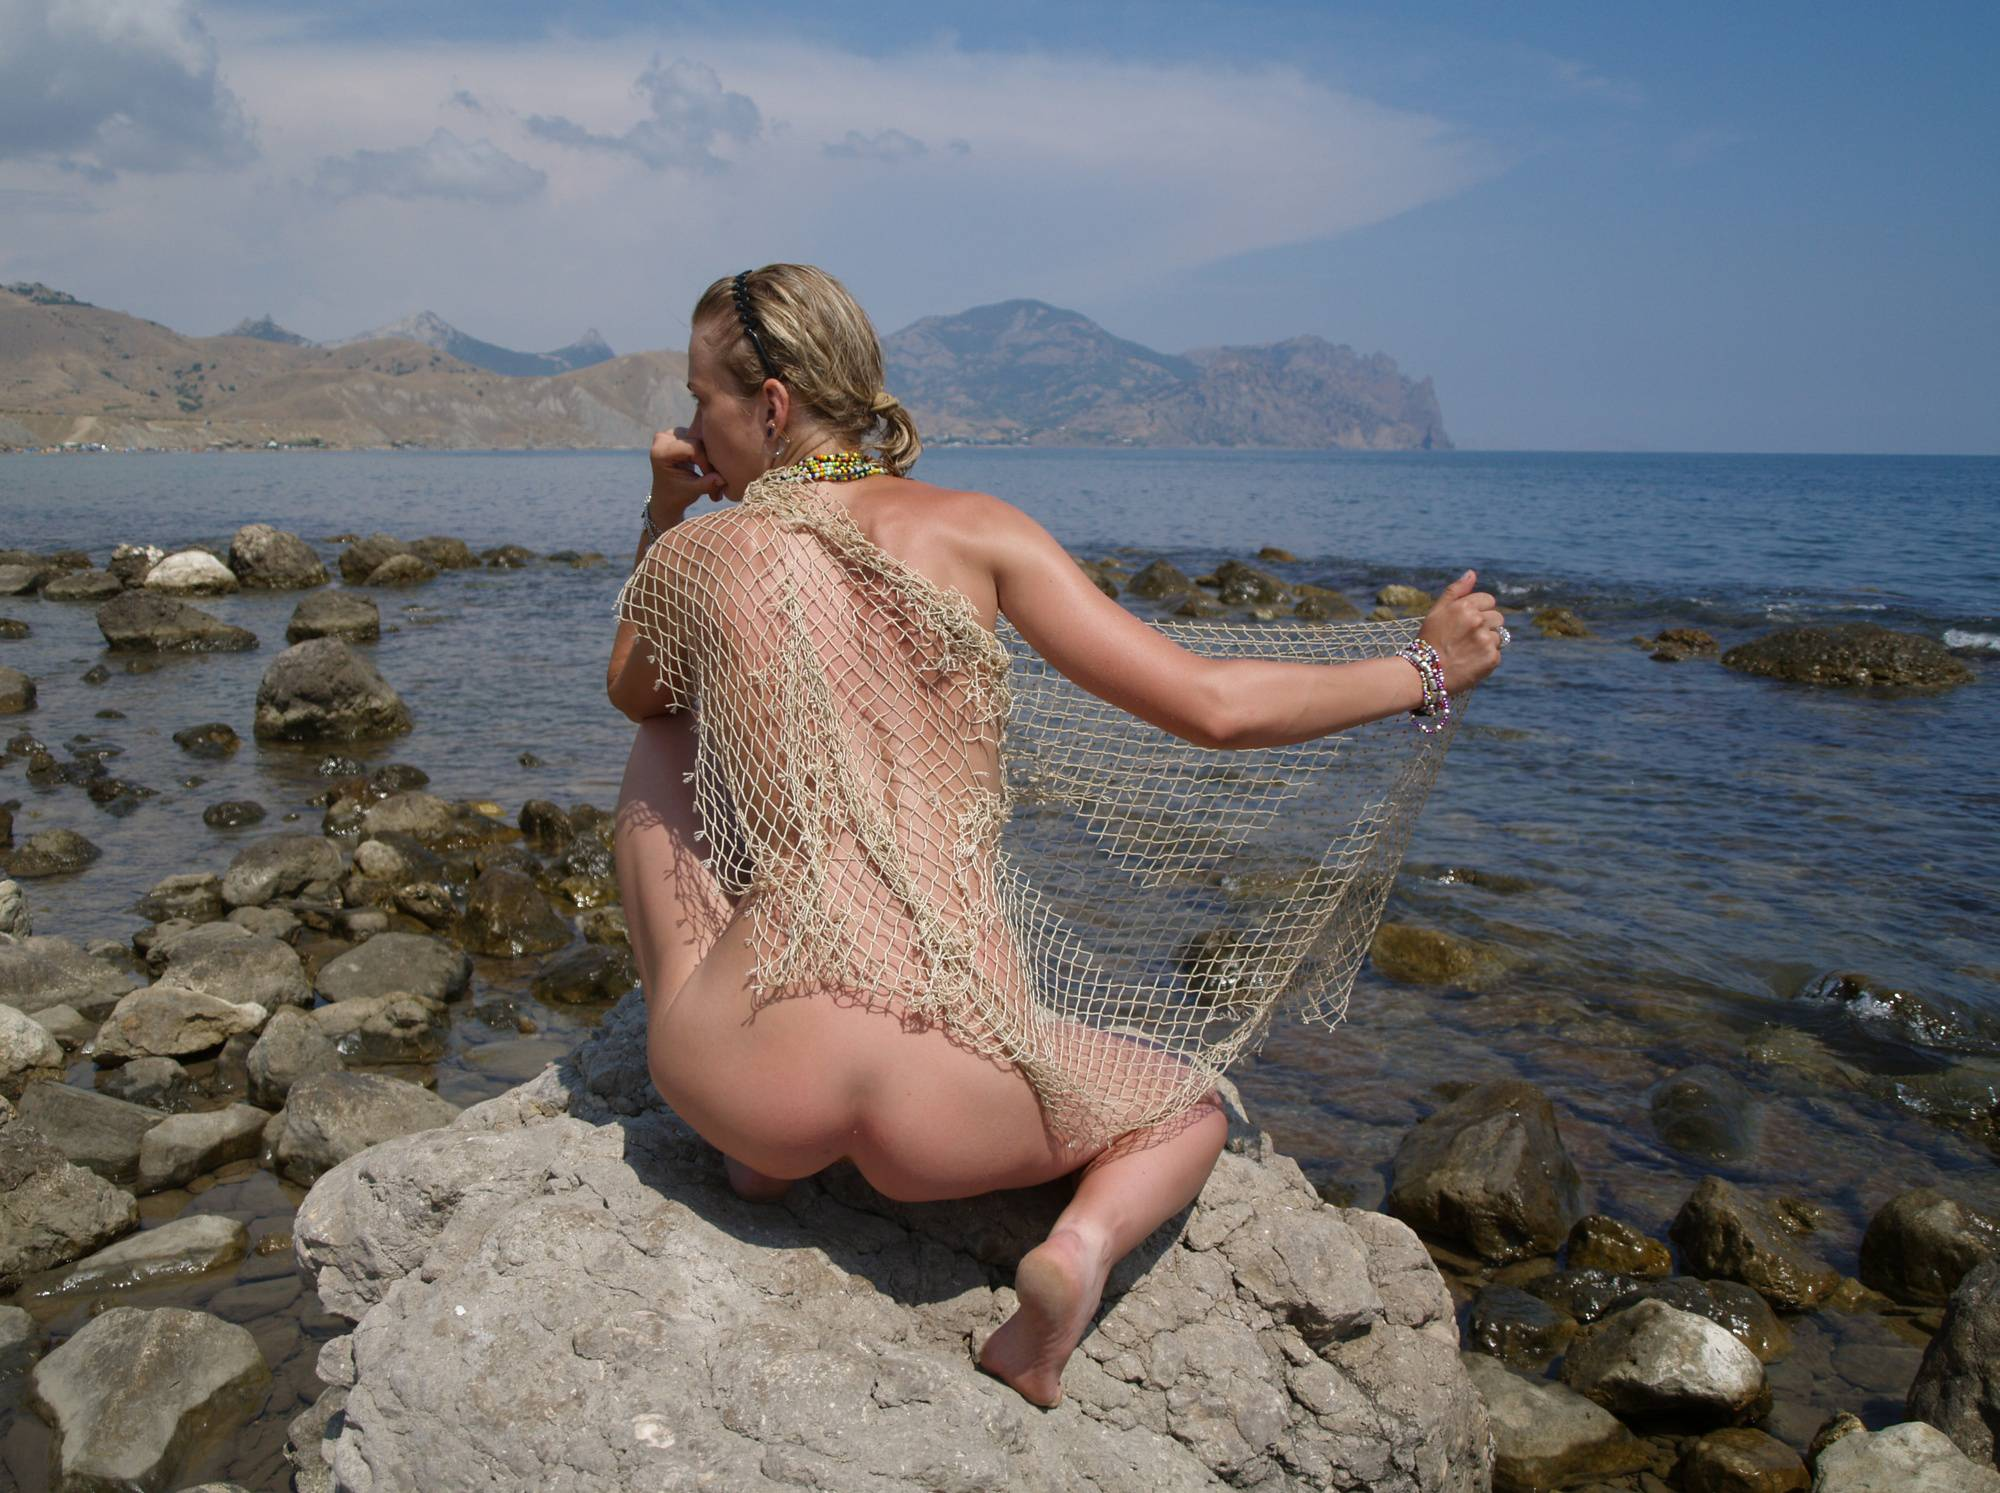 Naturist Model and Daughter - 2